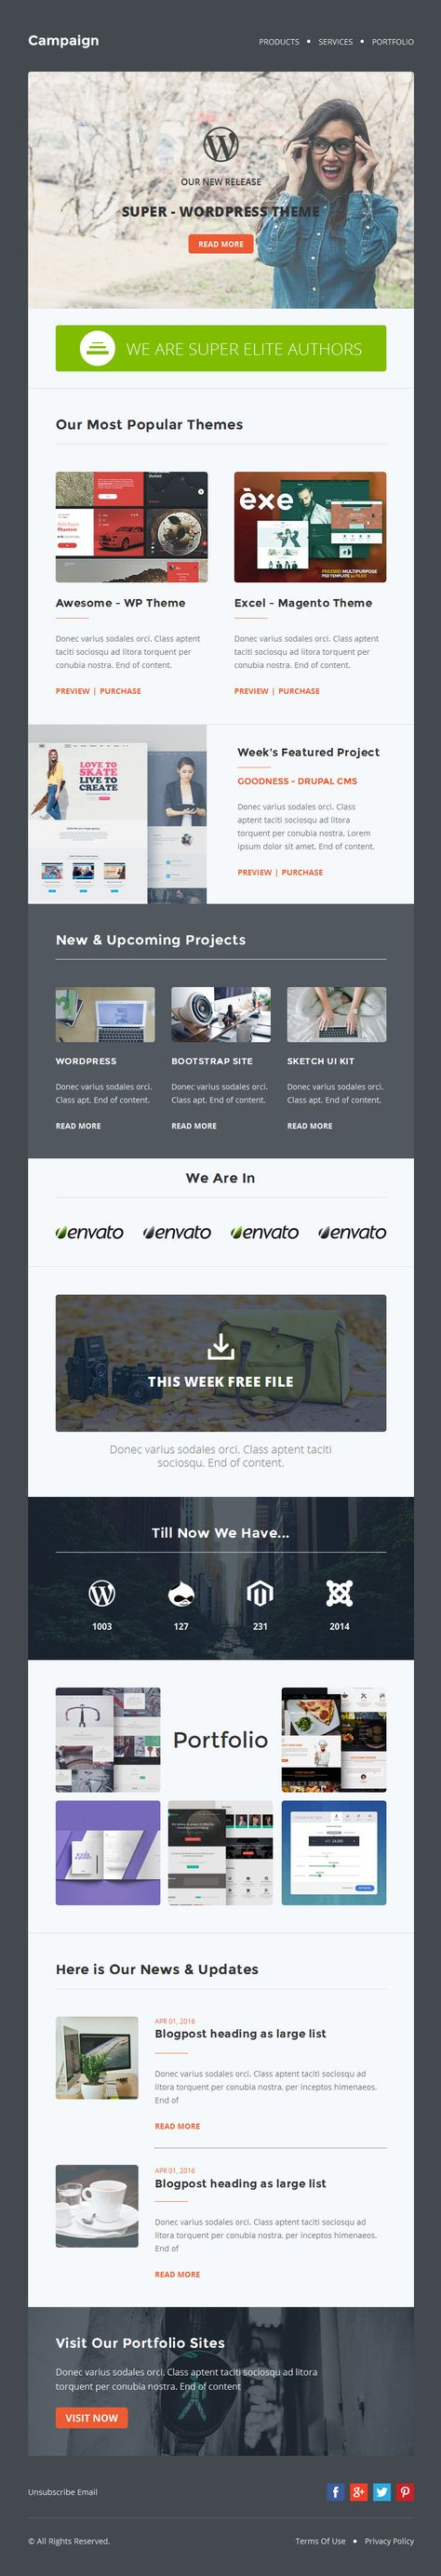 Campaign - Multipurpose Responsive Email Newletter Templates ...